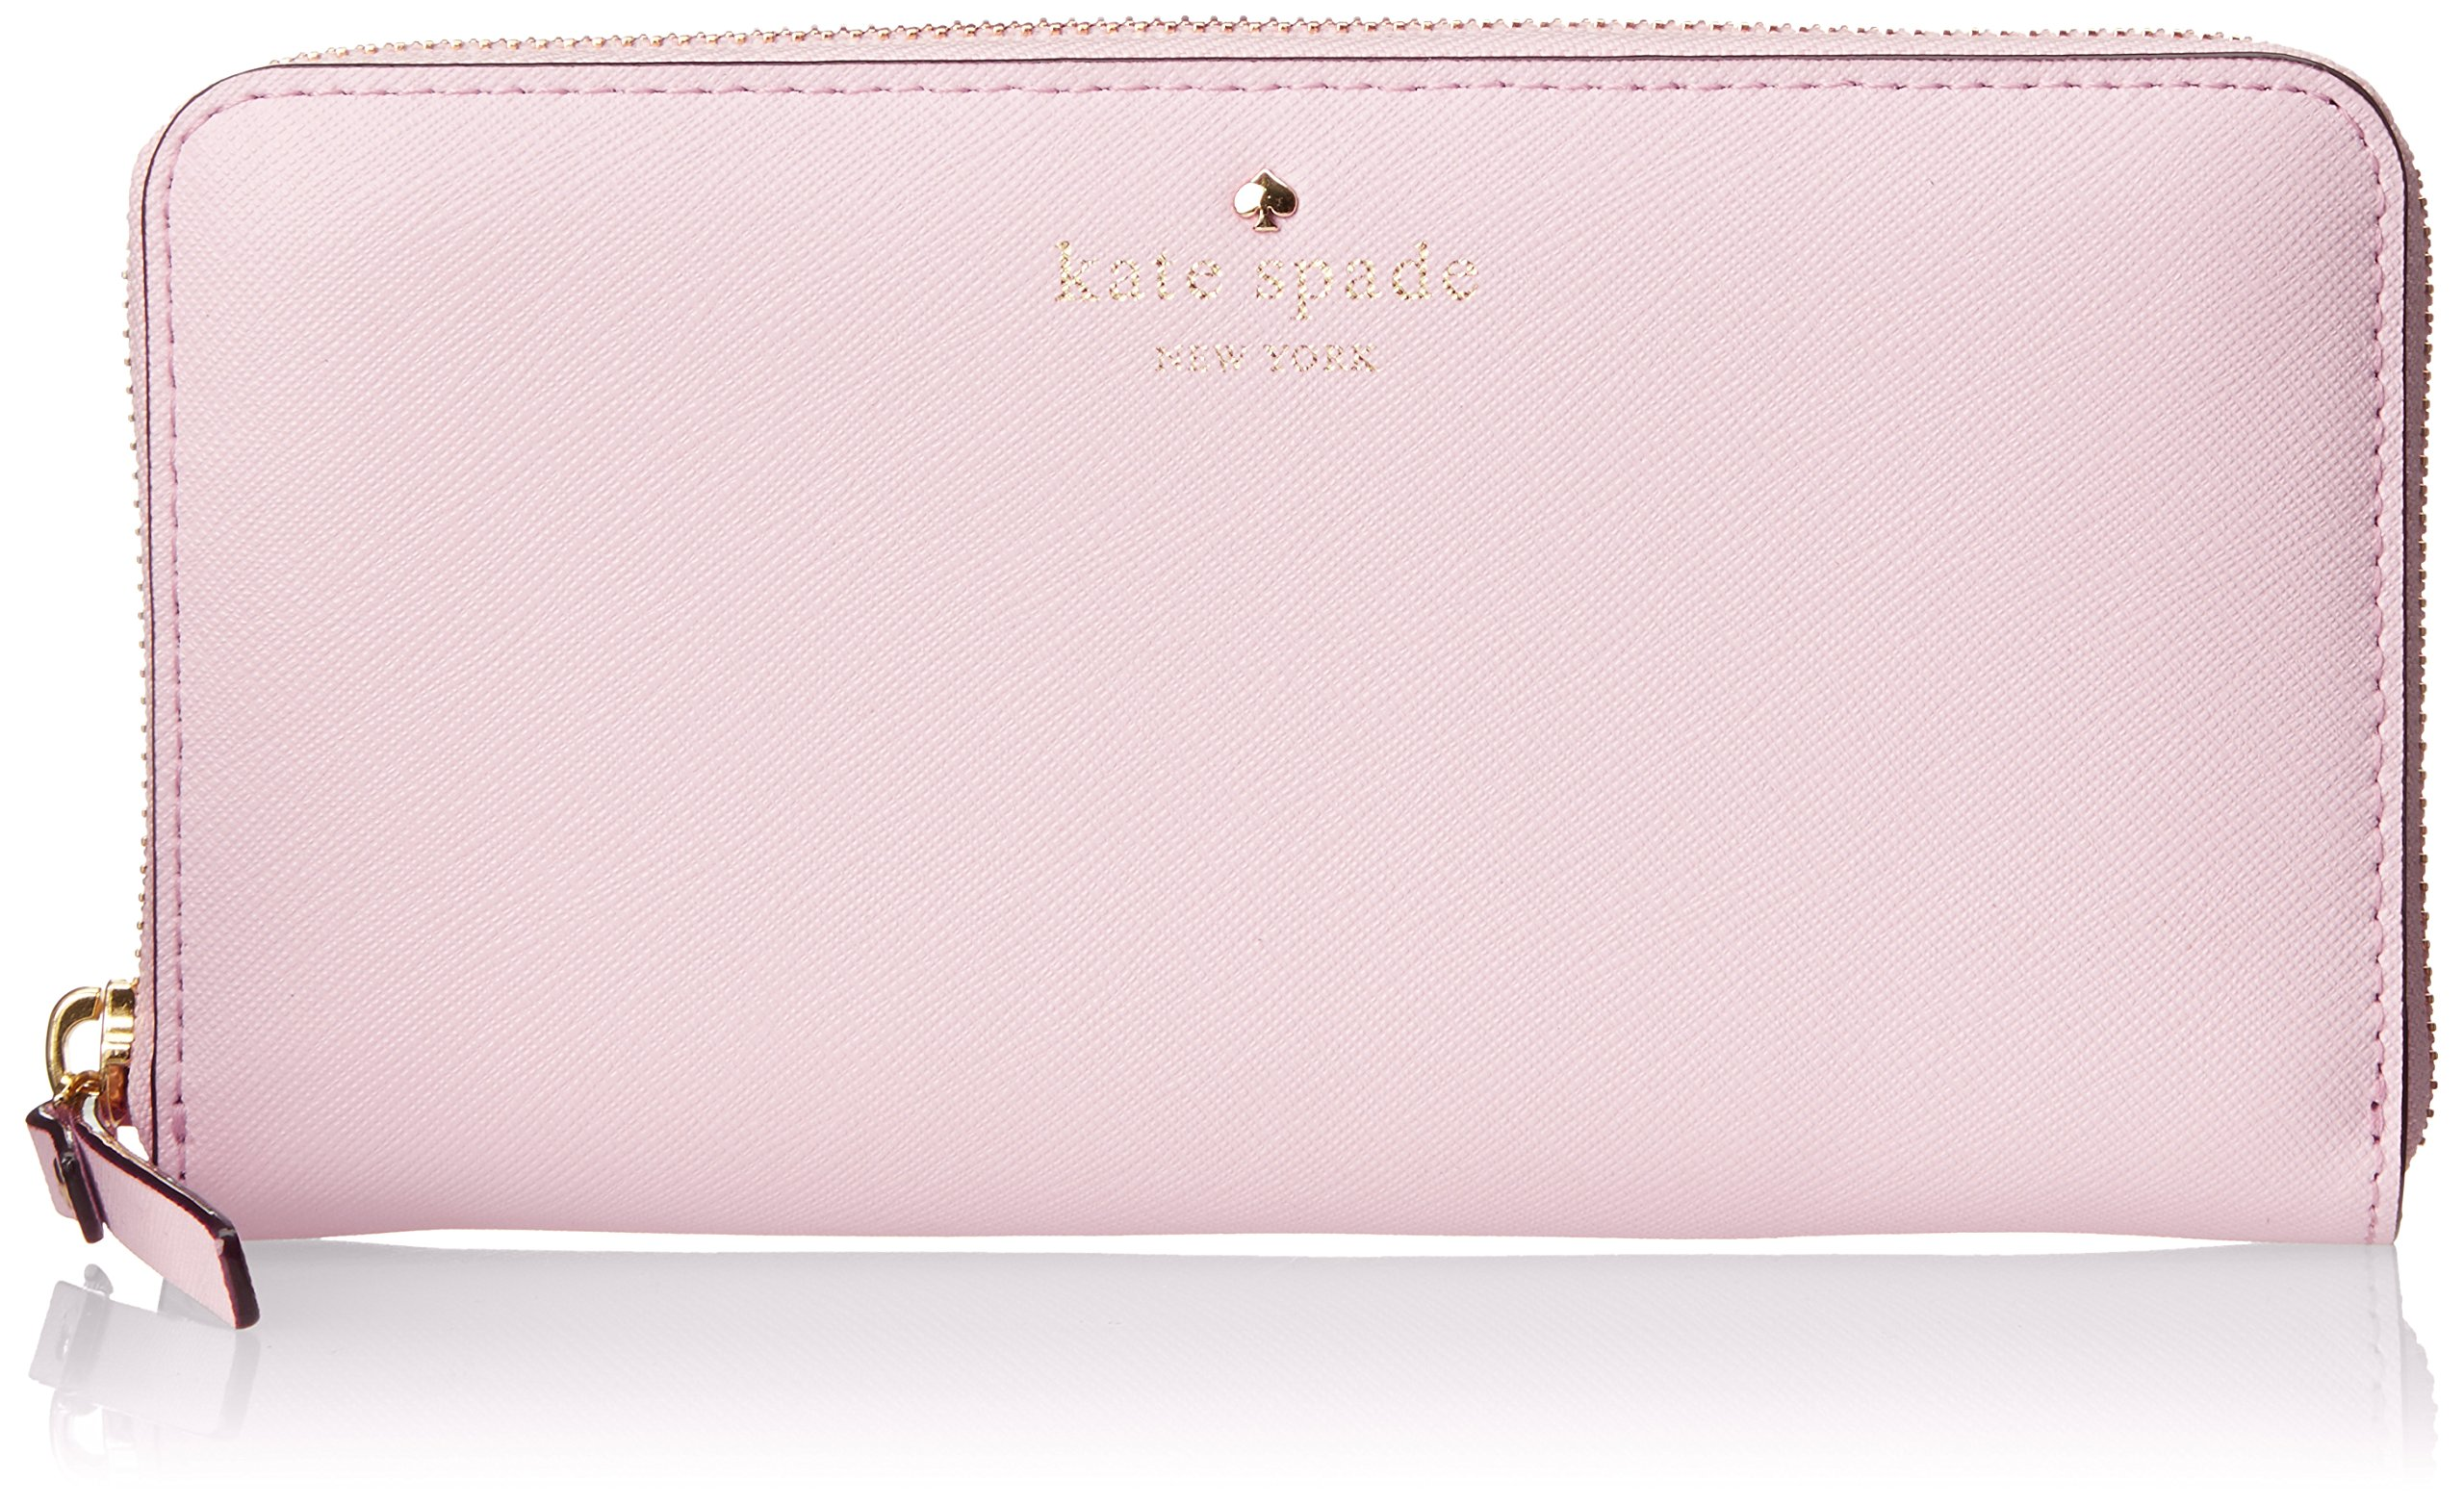 kate spade new york Cedar Street Lacey Wallet, Pink Blush, One Size